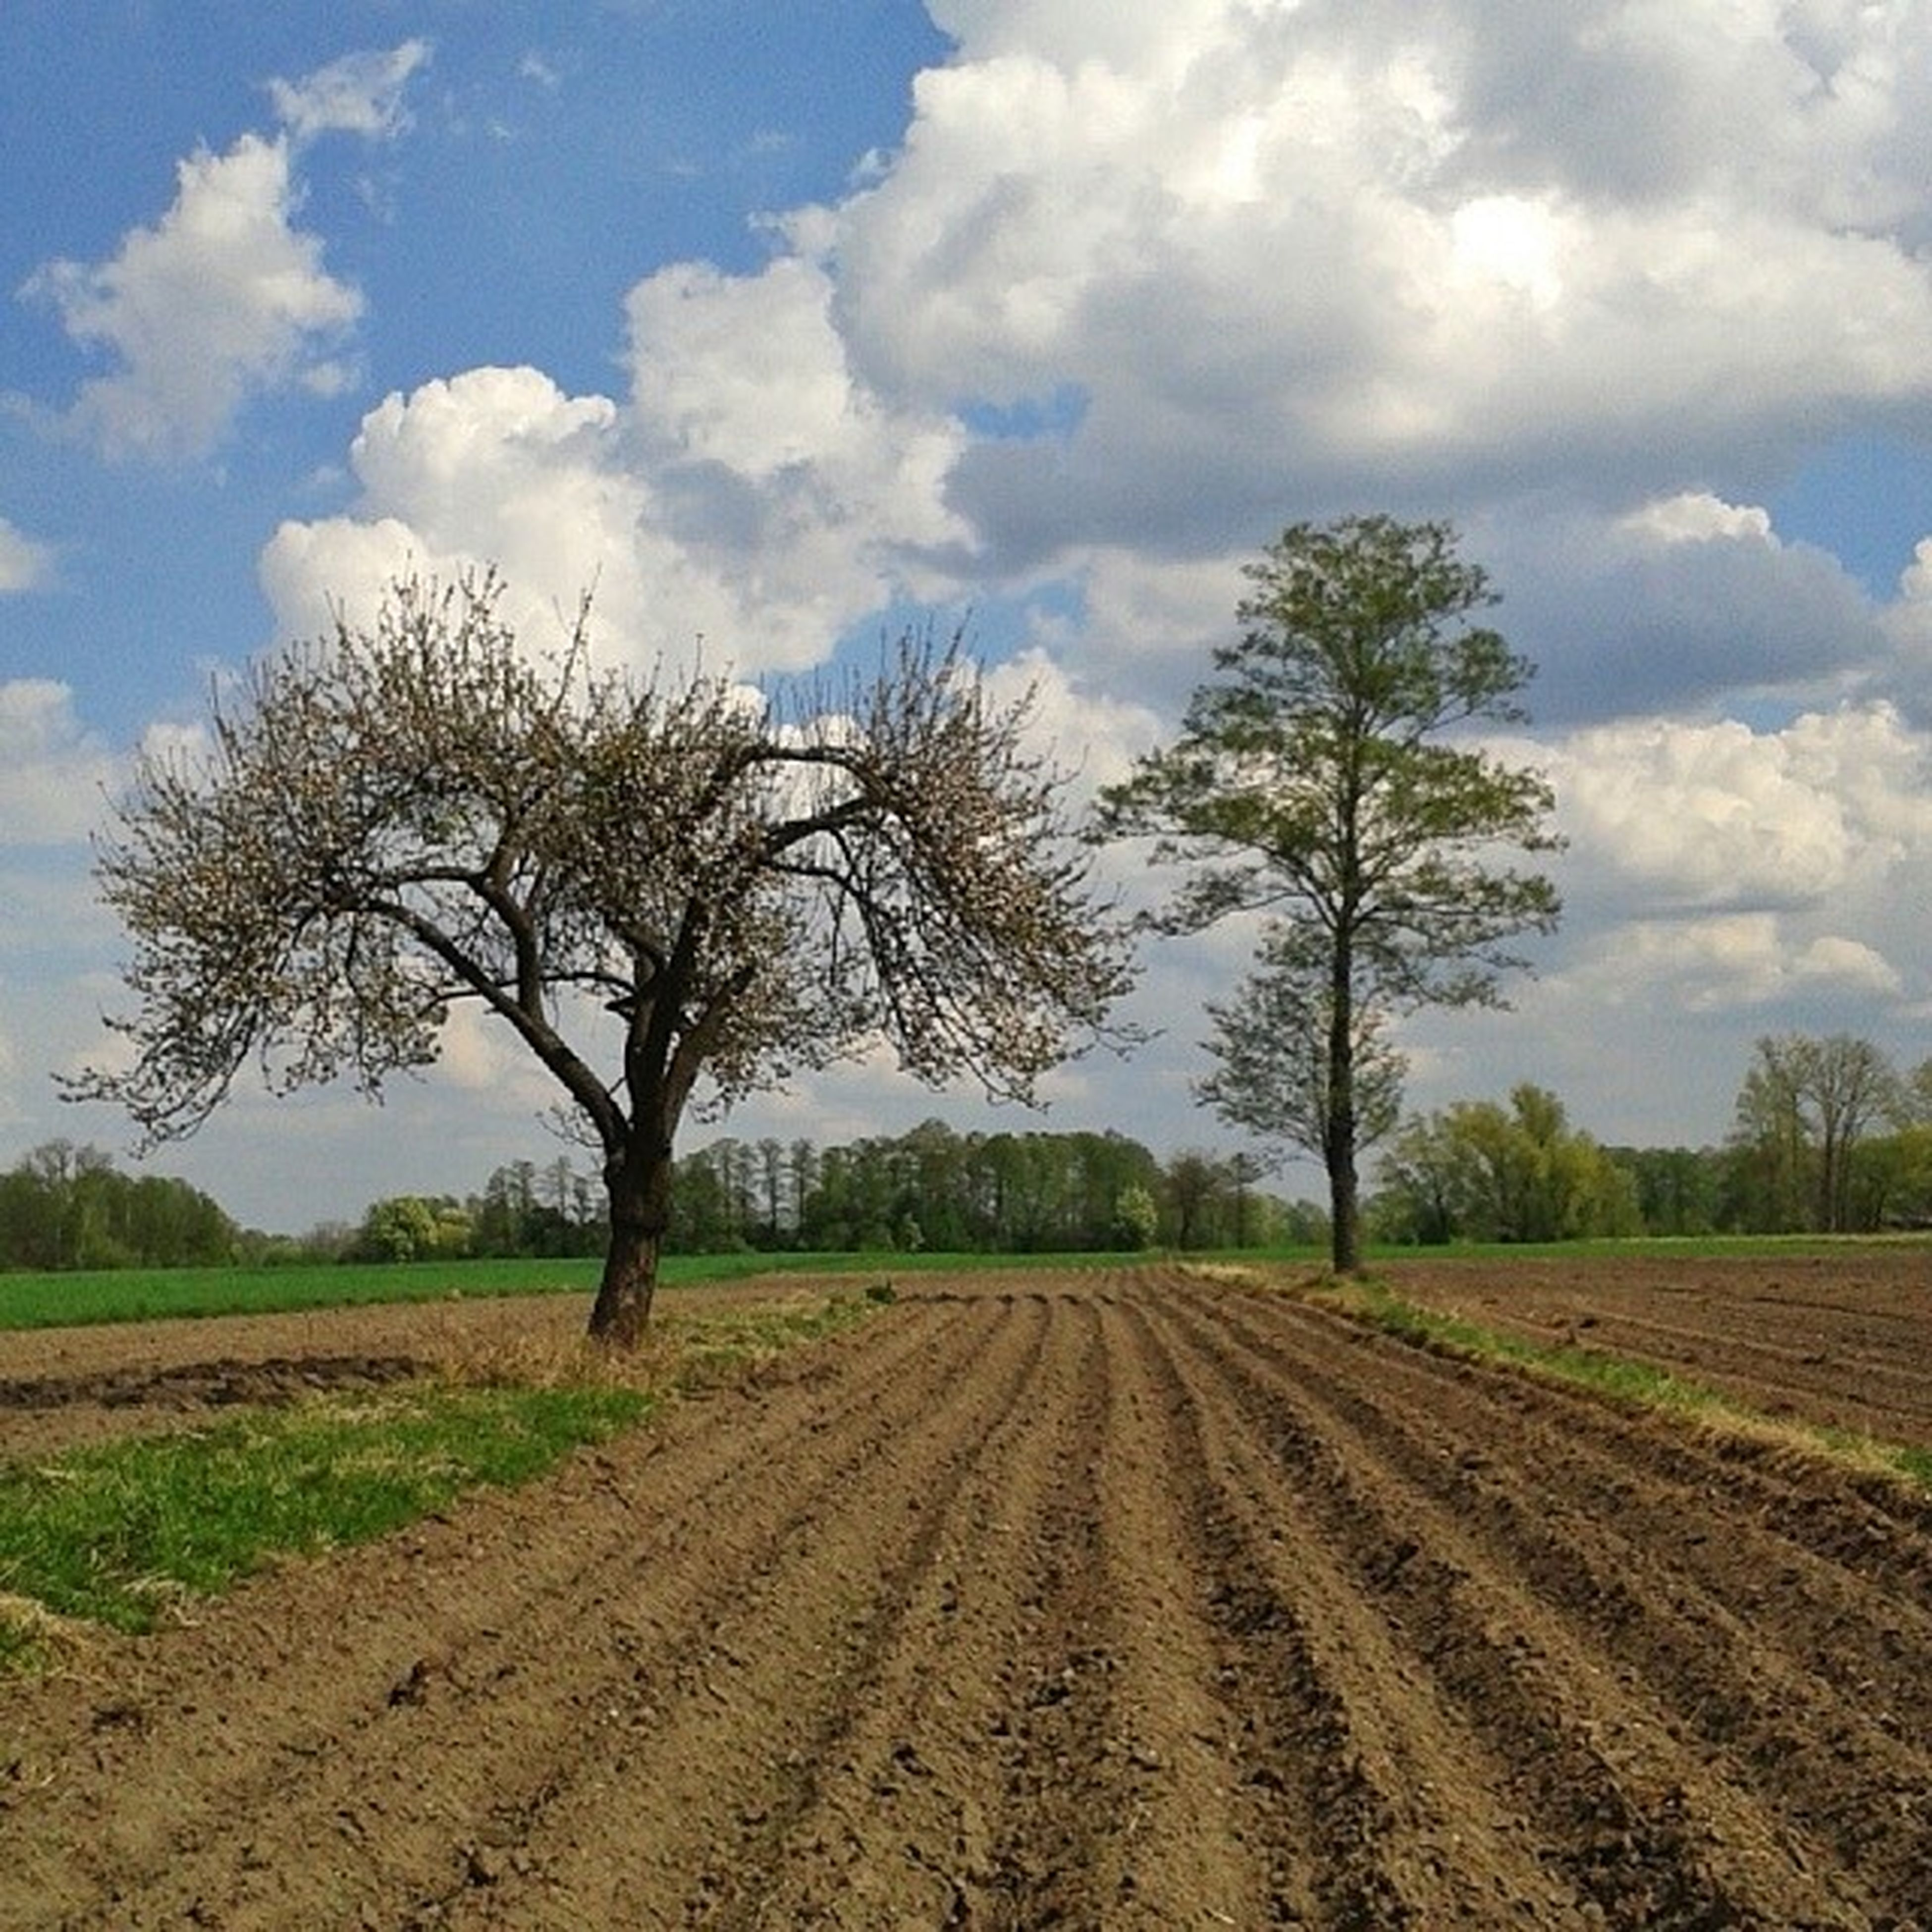 field, landscape, tree, rural scene, agriculture, sky, tranquility, tranquil scene, farm, nature, bare tree, scenics, grass, growth, beauty in nature, the way forward, cloud - sky, crop, dirt road, cloud